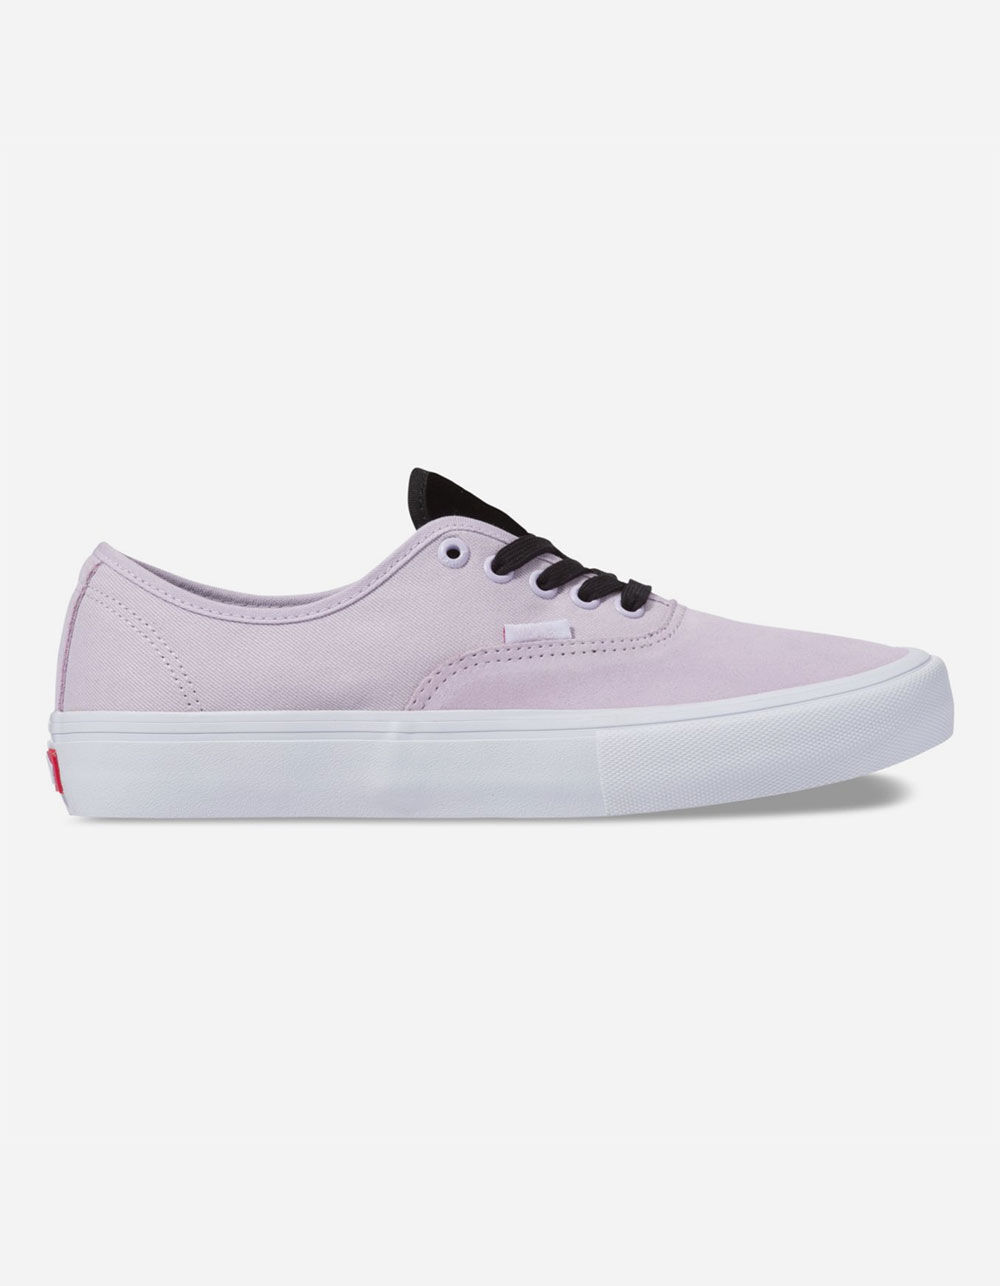 VANS Velvet Authentic Pro Lavendar Shoes